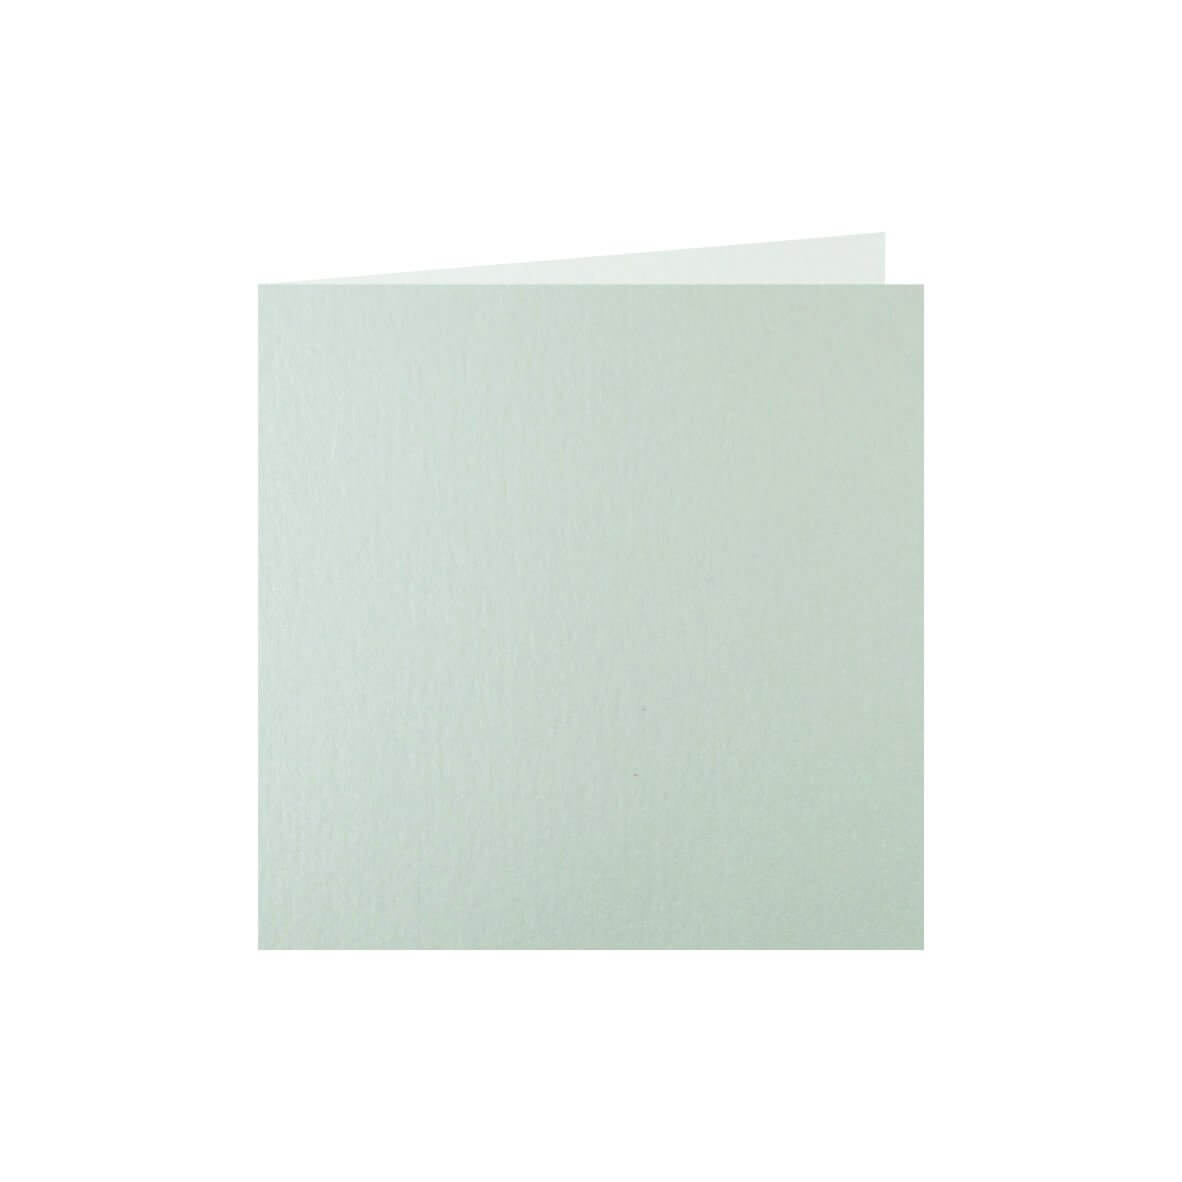 Paperstock Large Square Insert - Soft Sheen Ivory